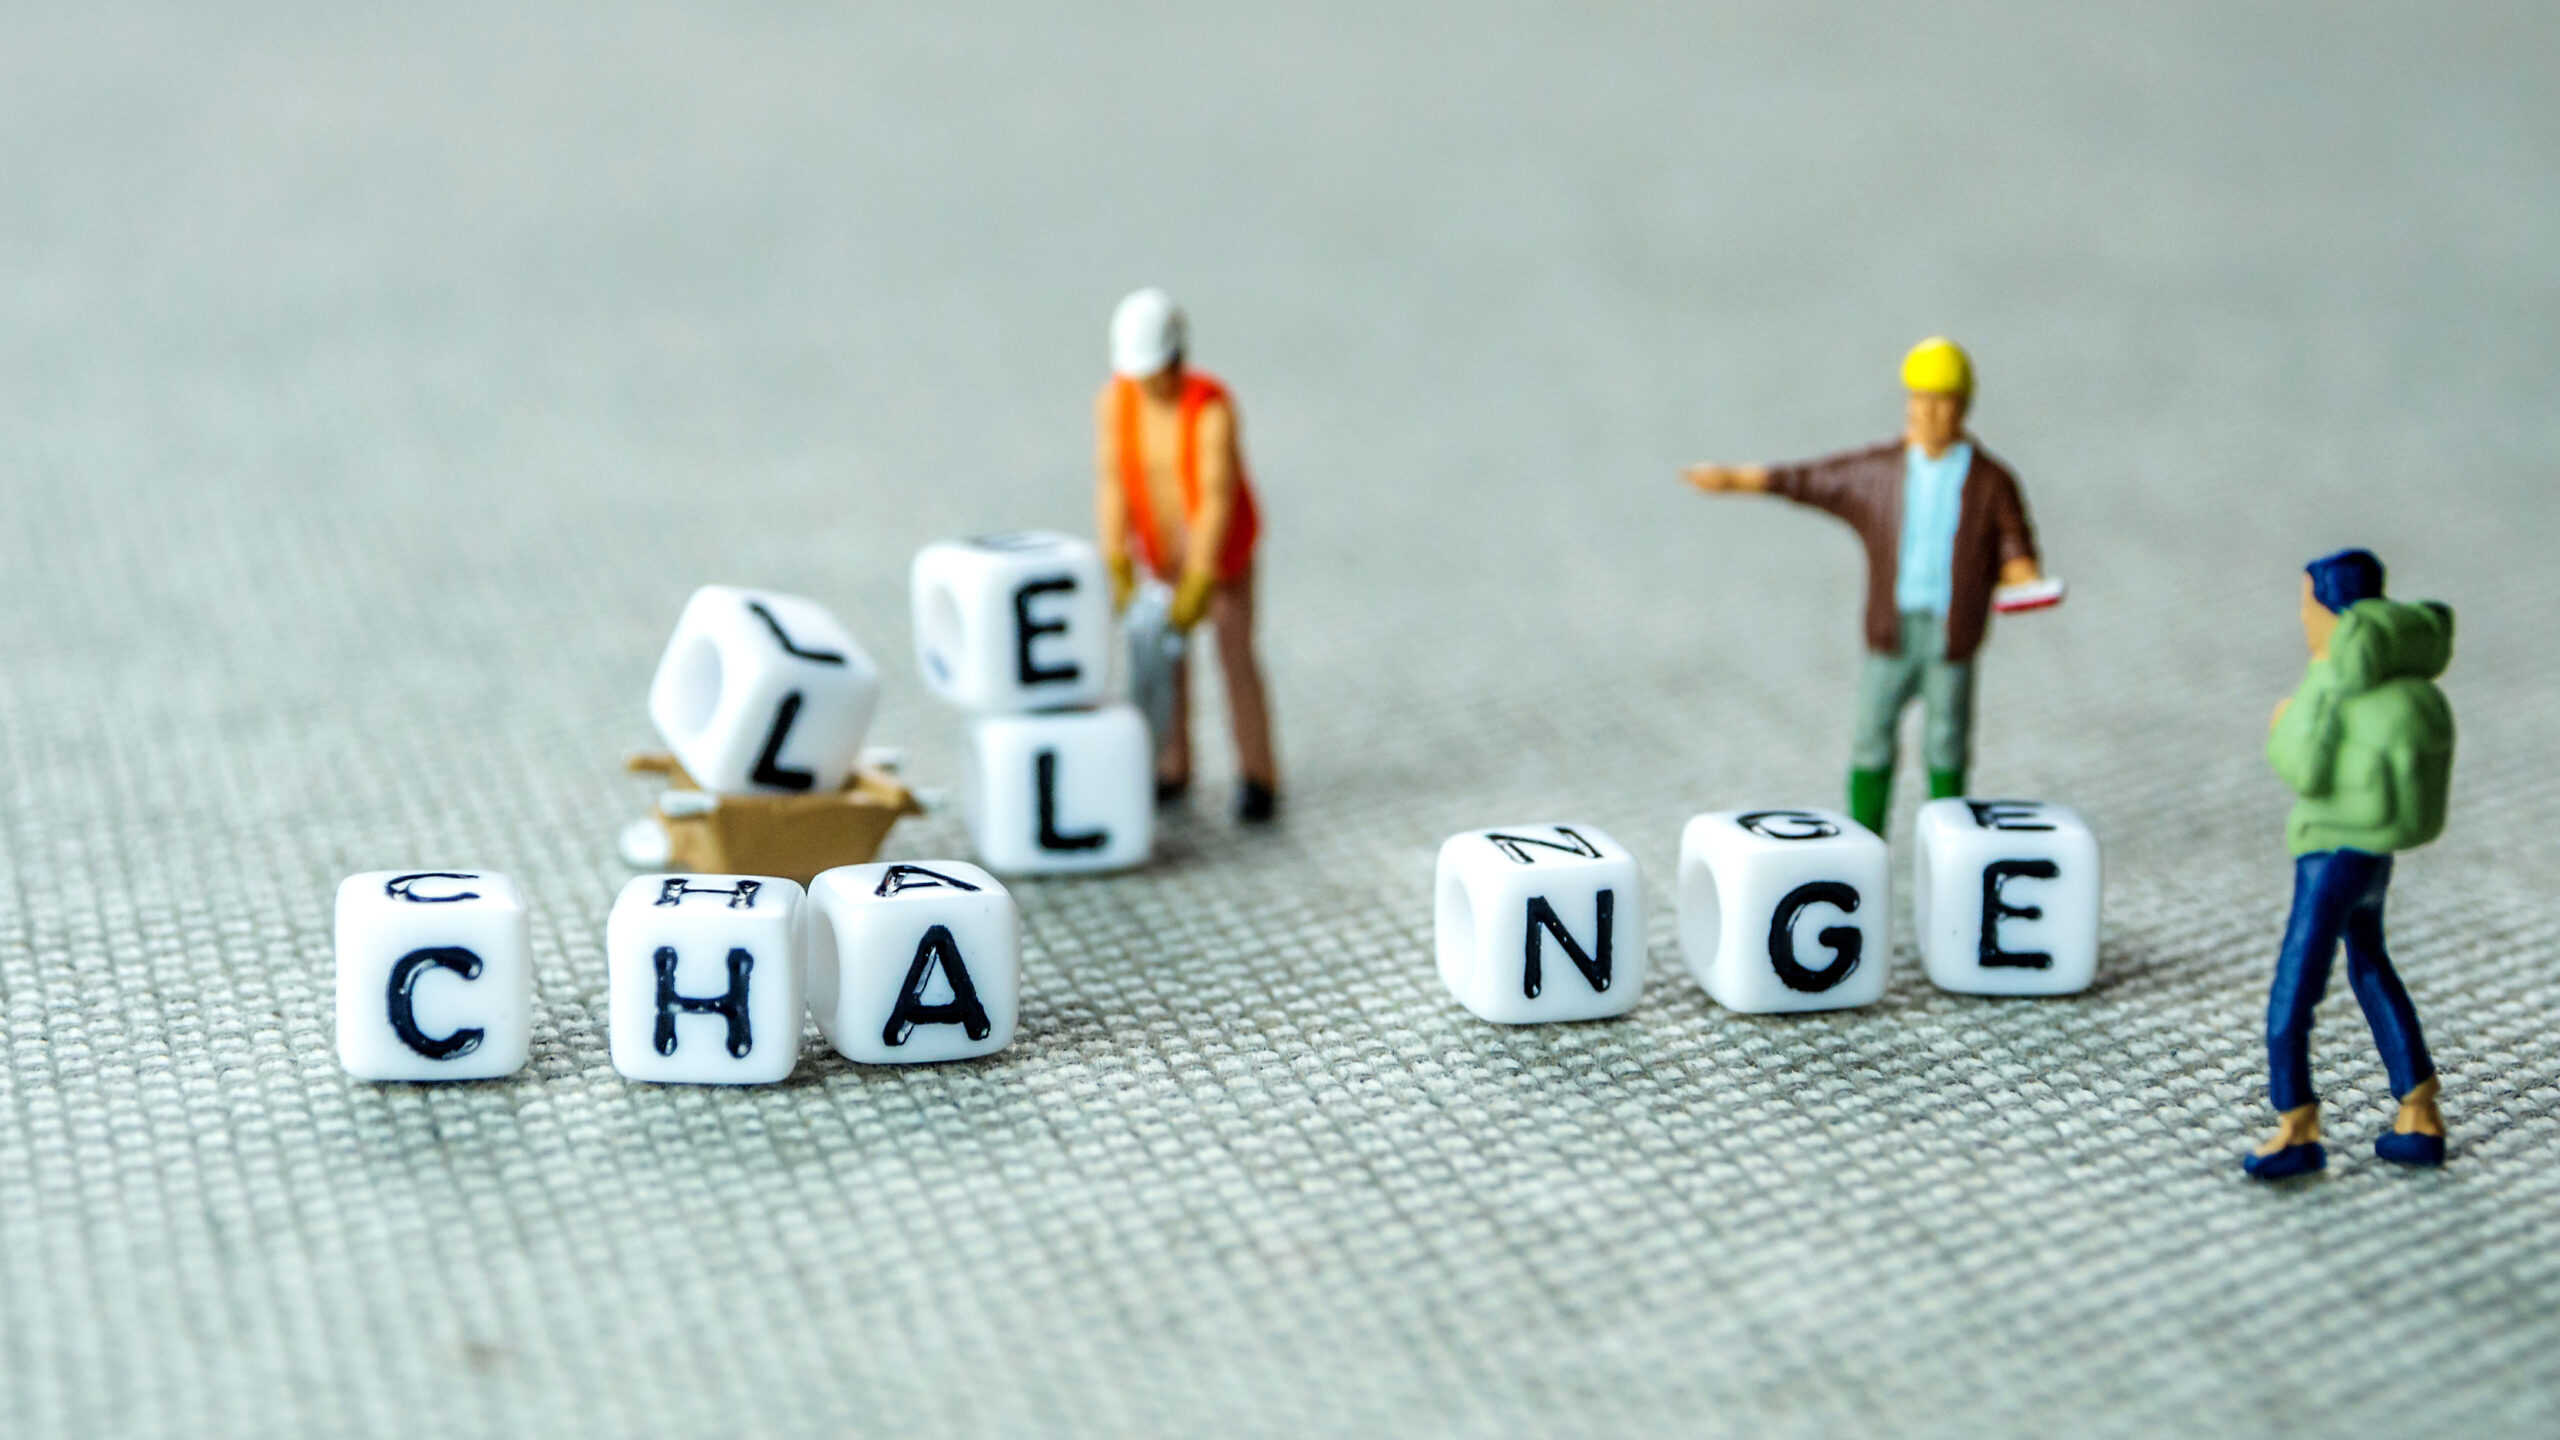 How Resilient Leaders Adapt to Change - Photo of three tiny figurines beside white blocks with letters on them. The figures are removing three letters from the word